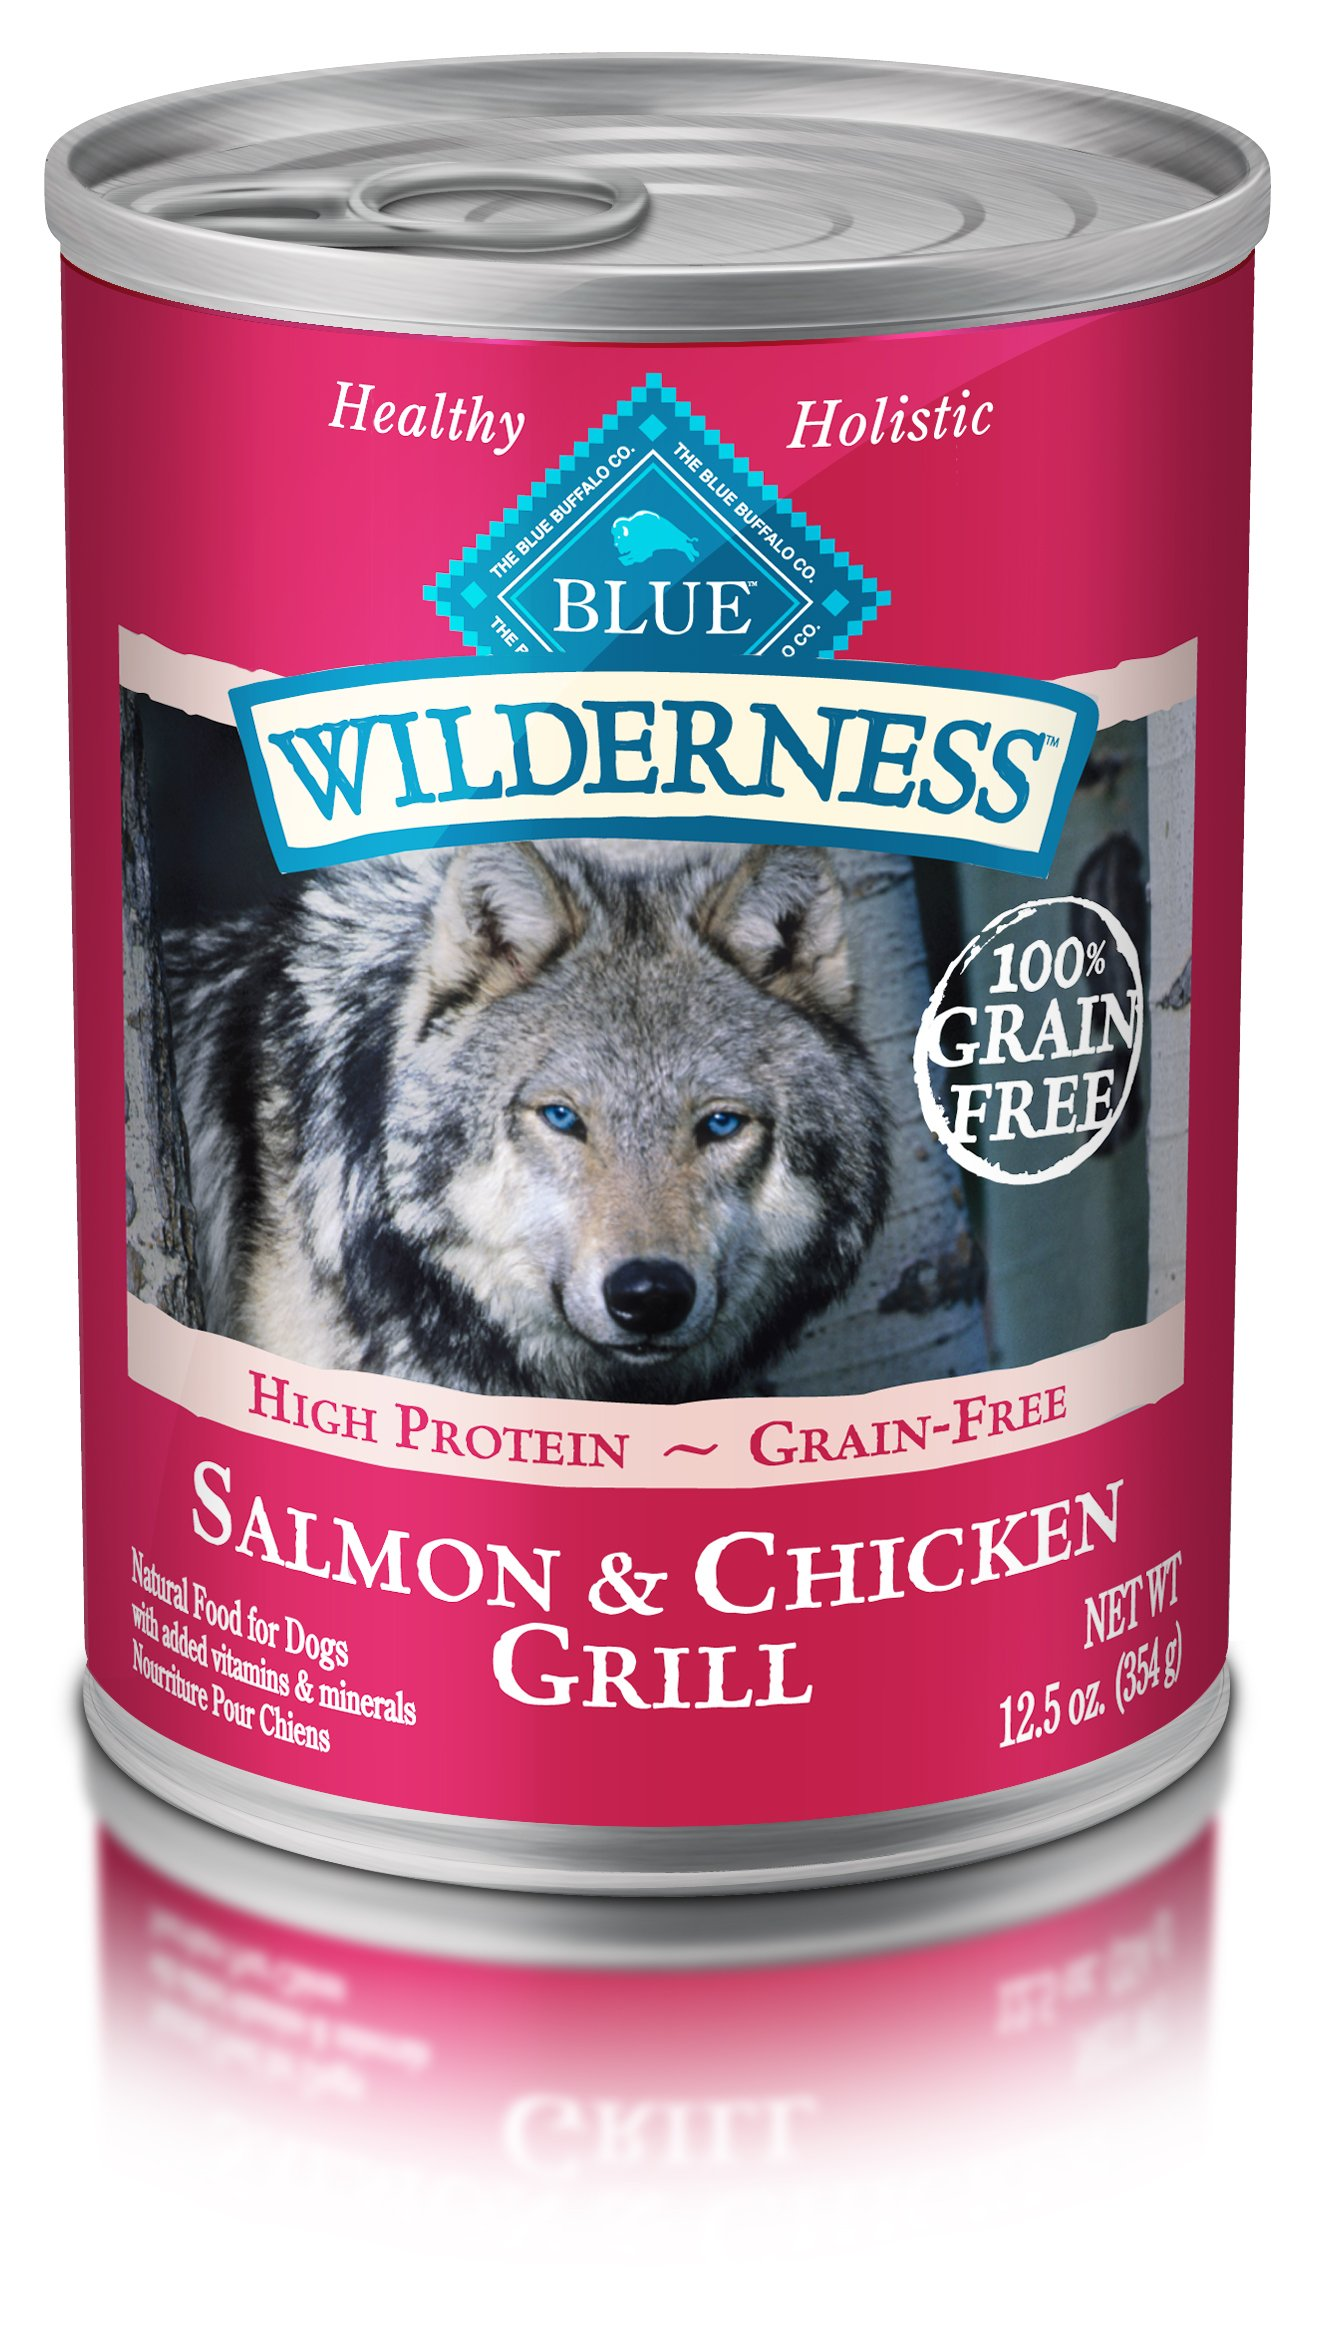 Blue Buffalo Wilderness High Protein Grain Free, Natural Adult Wet Dog Food, Salmon & Chicken Grill 12.5-Oz Can (Pack Of 12) by Blue Buffalo